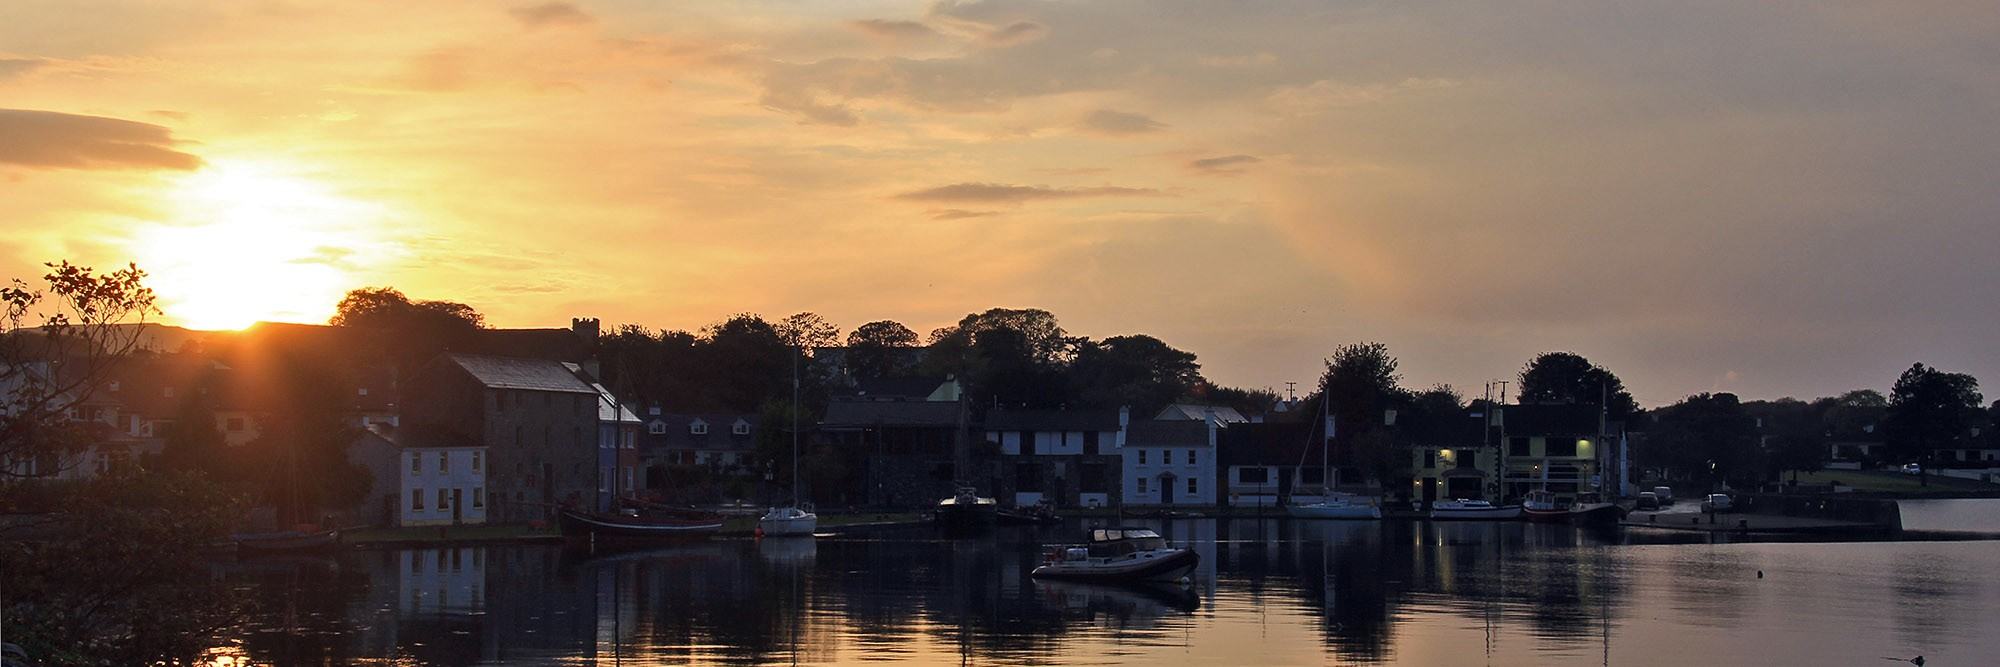 Sunset in Kinvara